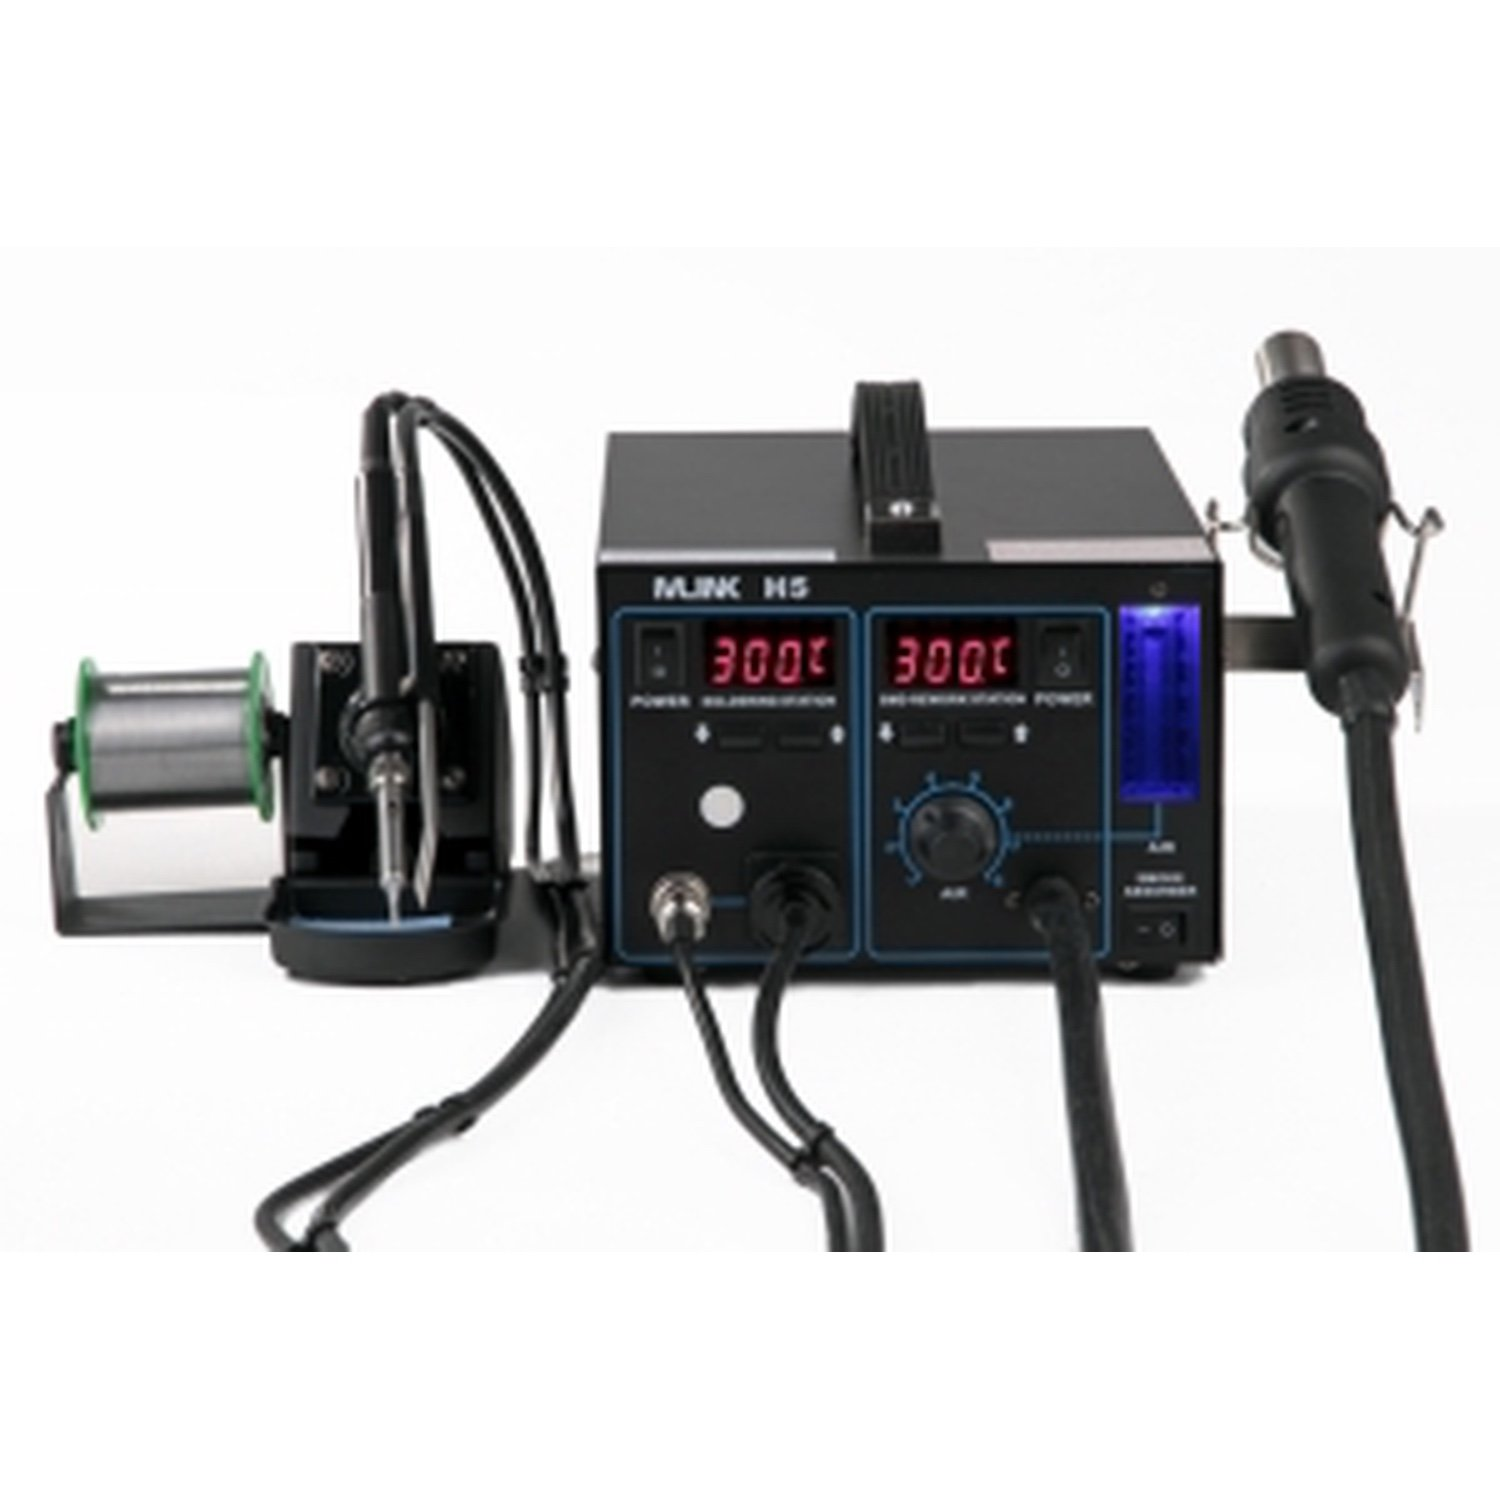 Station 2 In 1 Hot Air Welding And Soldering Iron MLINK H5